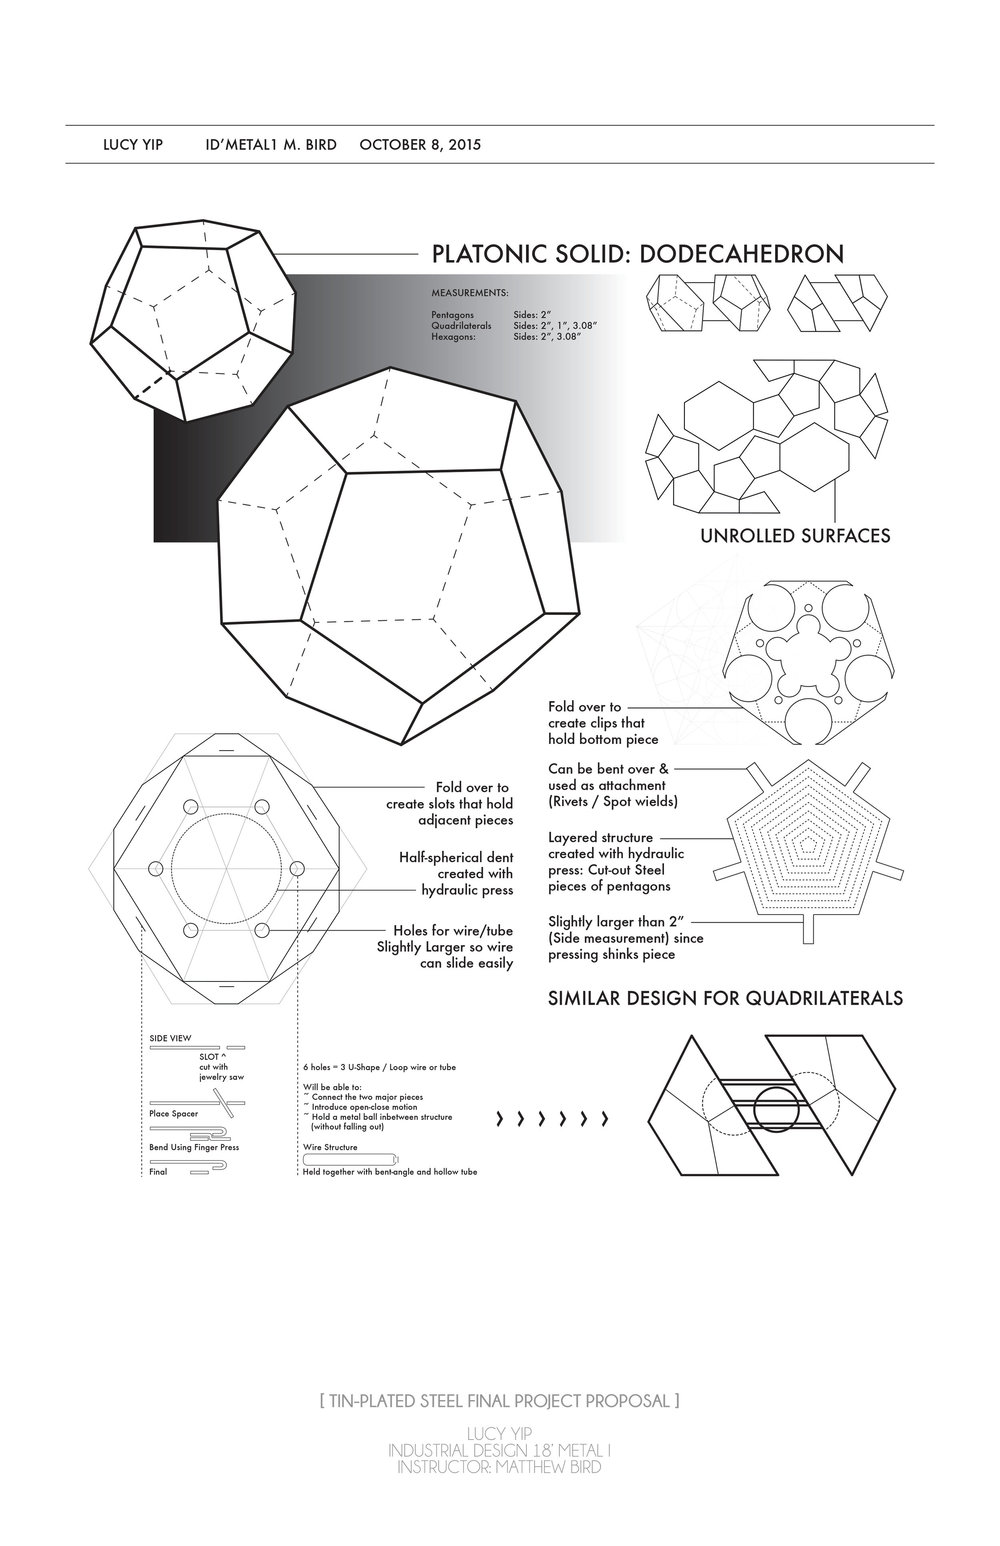 2015FA.Metal+1.Tin-Plated+Steel+Final+Project+Proposal.Yip_Lucy.jpg